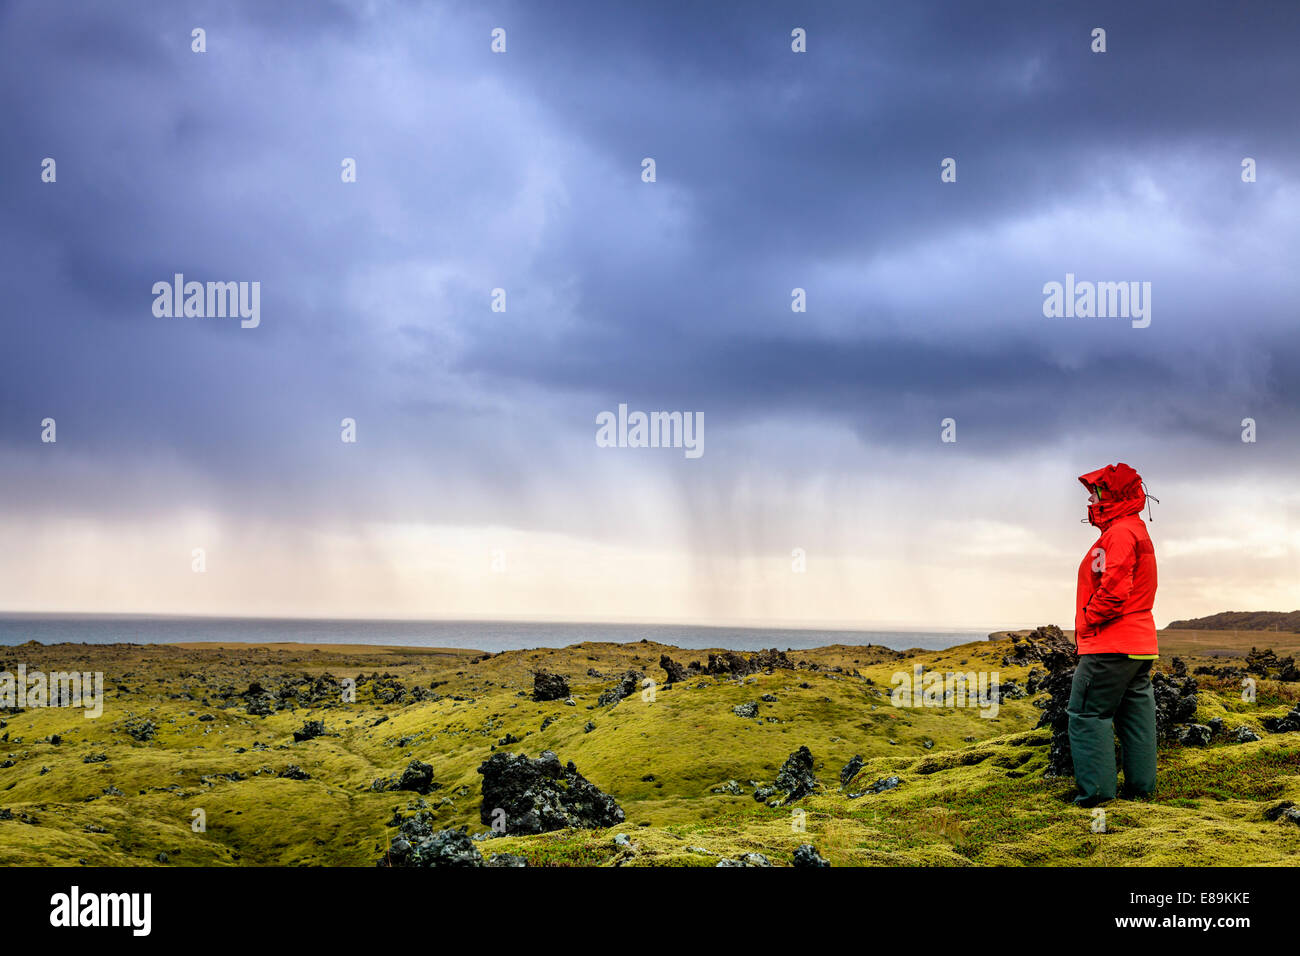 Hiking in lava field in Iceland - Stock Image